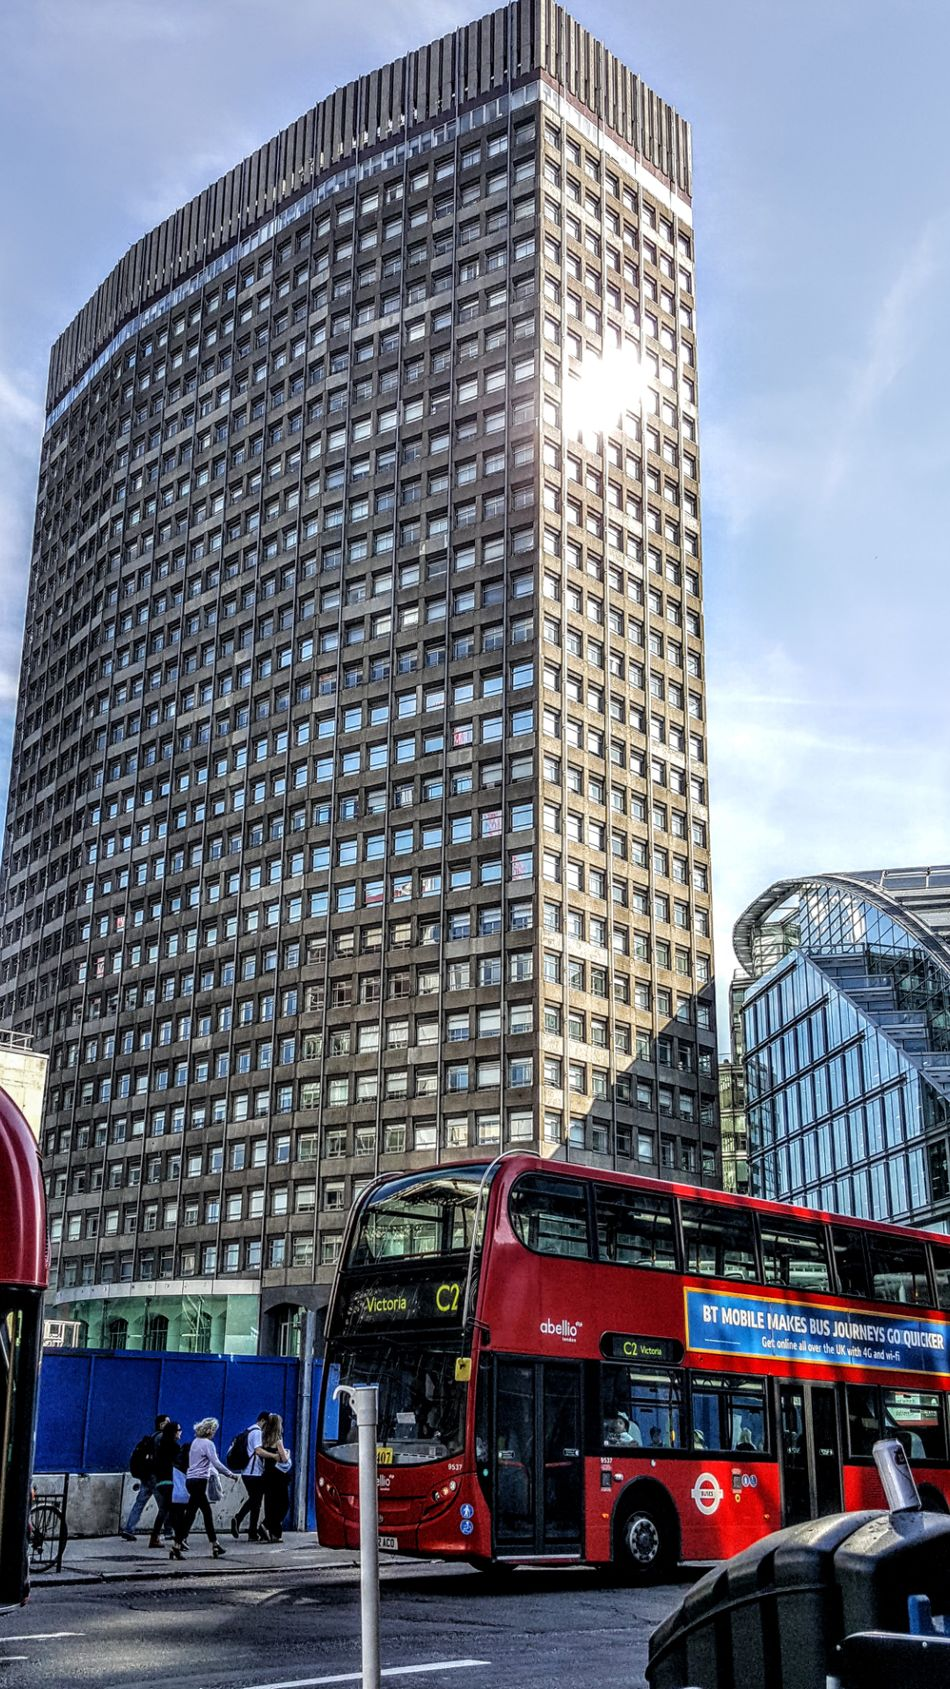 Architecture Modern Building Exterior Skyscraper Built Structure City Sky Day Outdoors Politics And Government Adult People London LONDON❤ London Streets Tranquil Scene Facebook Page Friends ❤ Travel Destinations Londononly London's Buildings London Photography City London Life Architecture